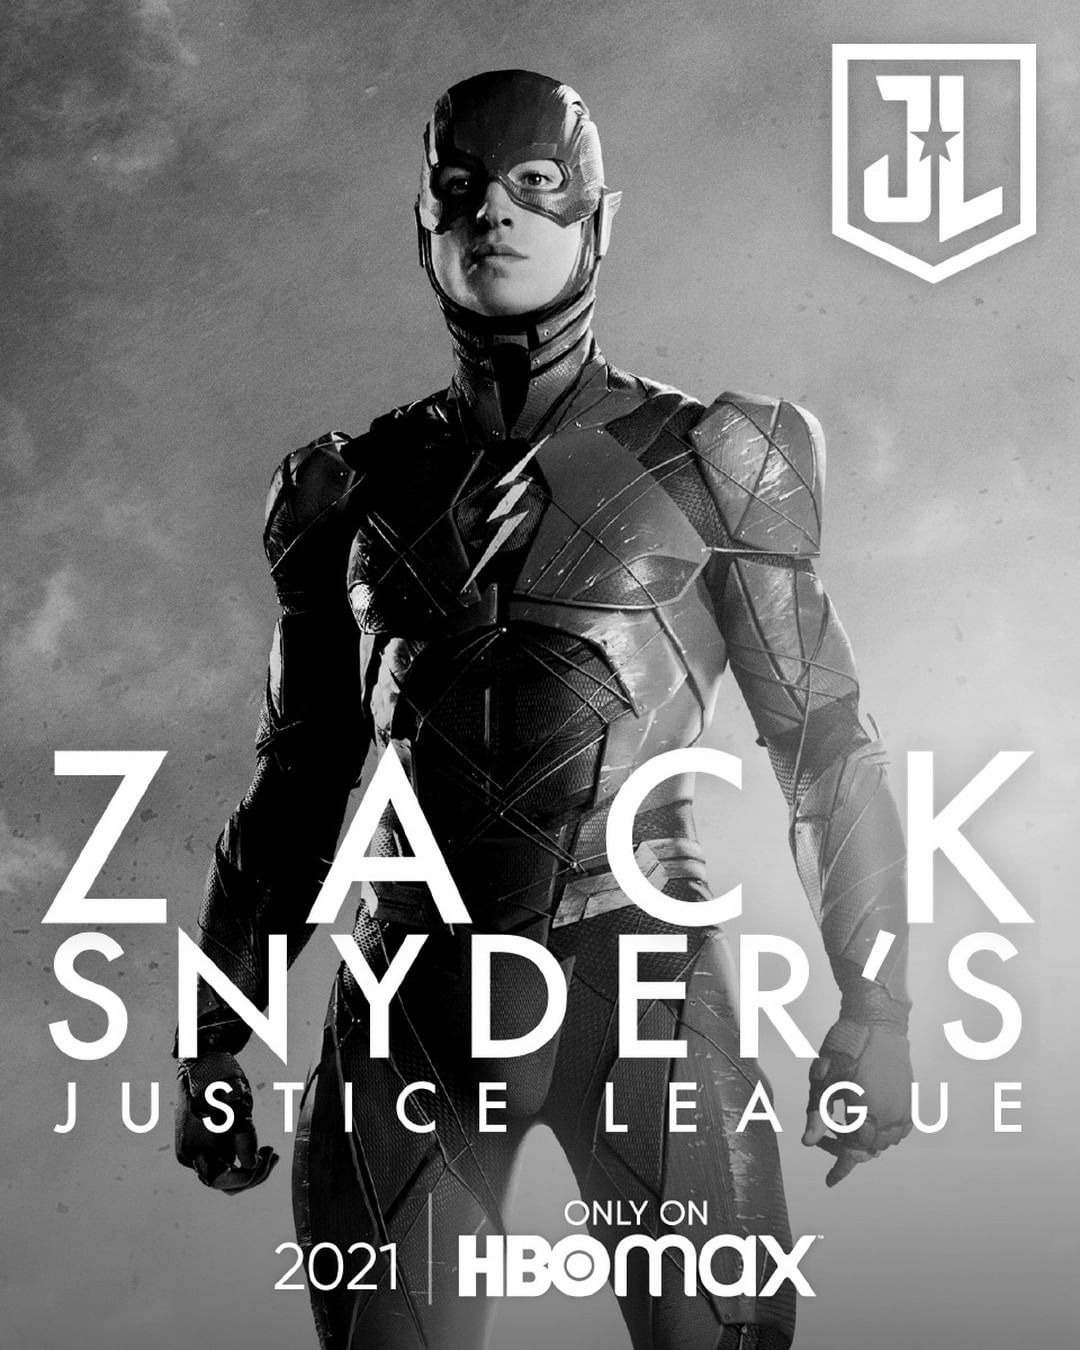 szmk_hbo_justice_league_snydercut_zack_snyder_batman_dc_comics_superman_aquaman_wonder_woman_cyborg_darkseid_6.jpg